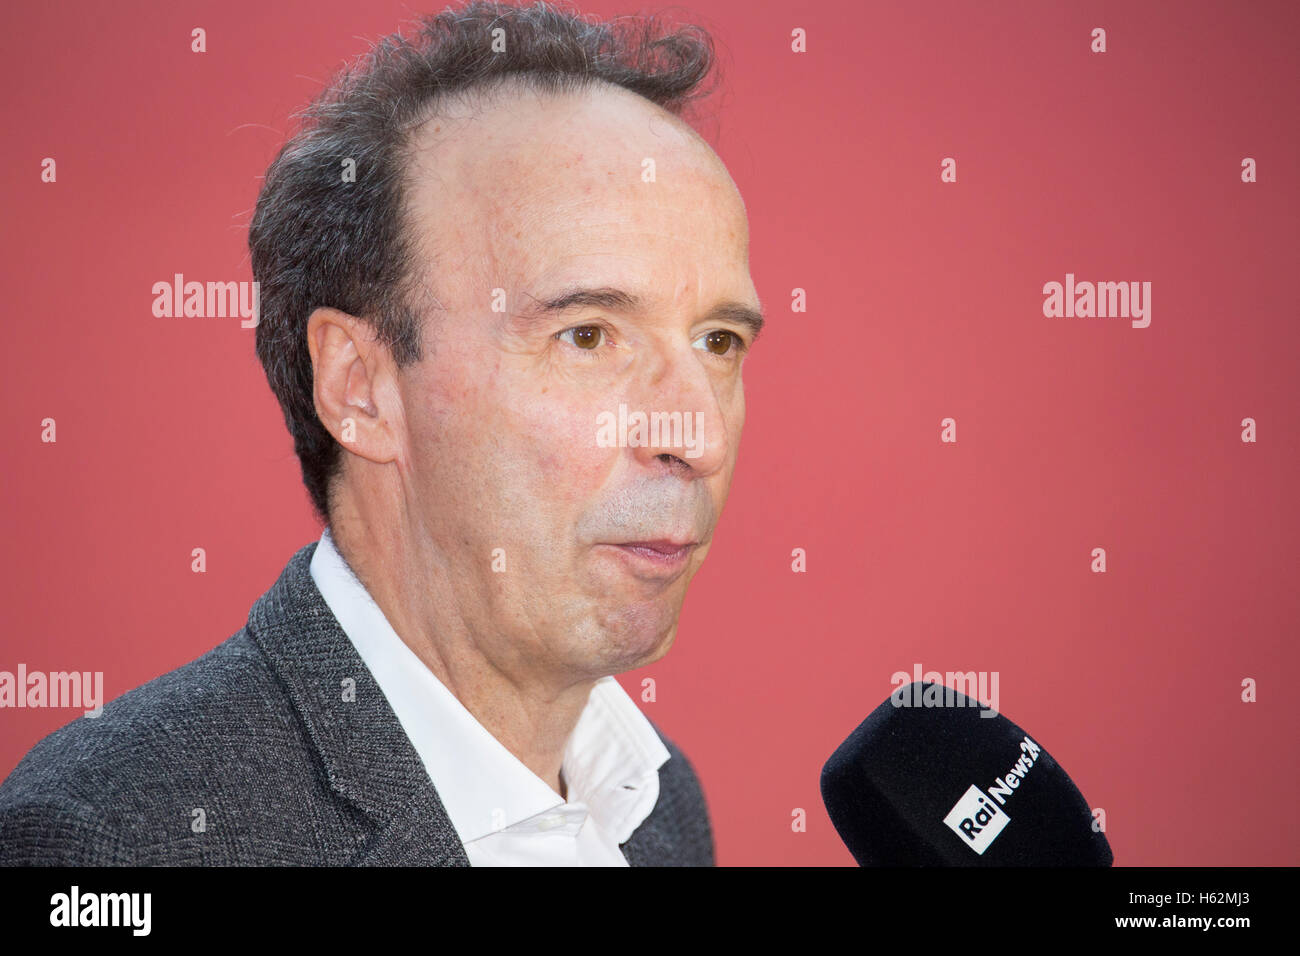 583d2280982 Roberto Benigni on the red carpet at the 11th Rome International Film  Festival - Stock Image